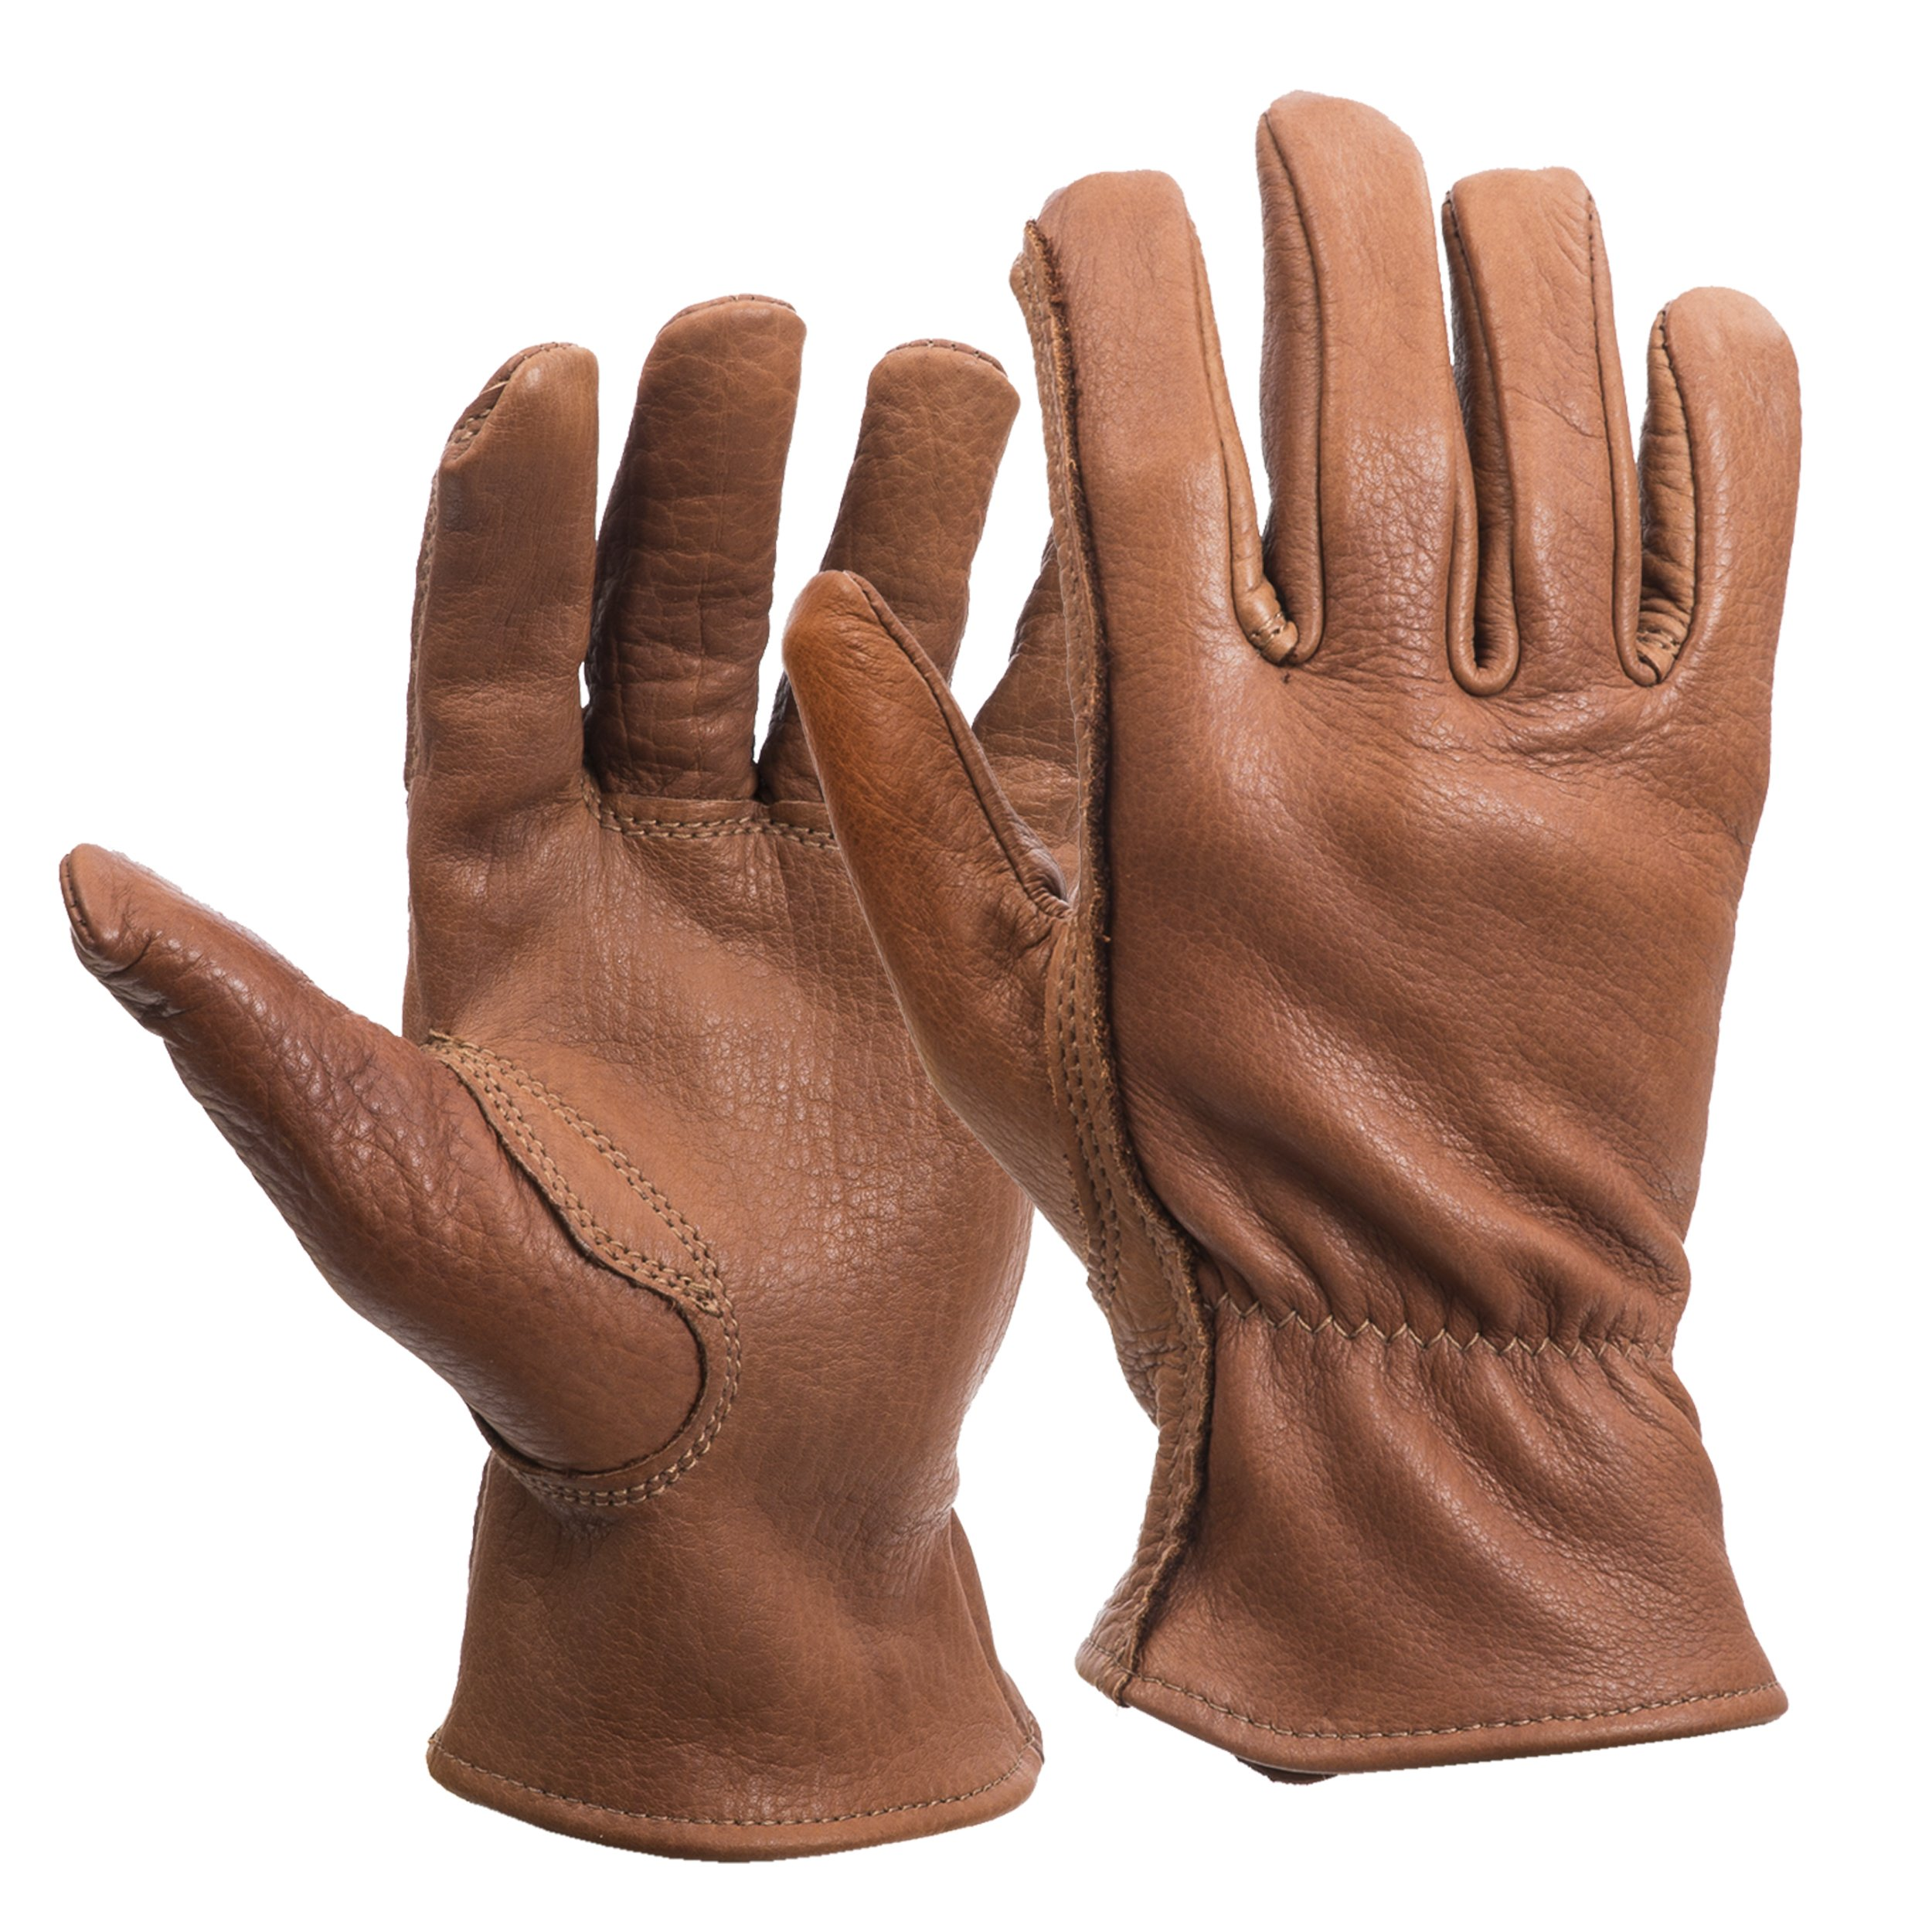 American Made Buffalo Leather Work Gloves , 650, Size: Large by Midwest Gloves & Gear